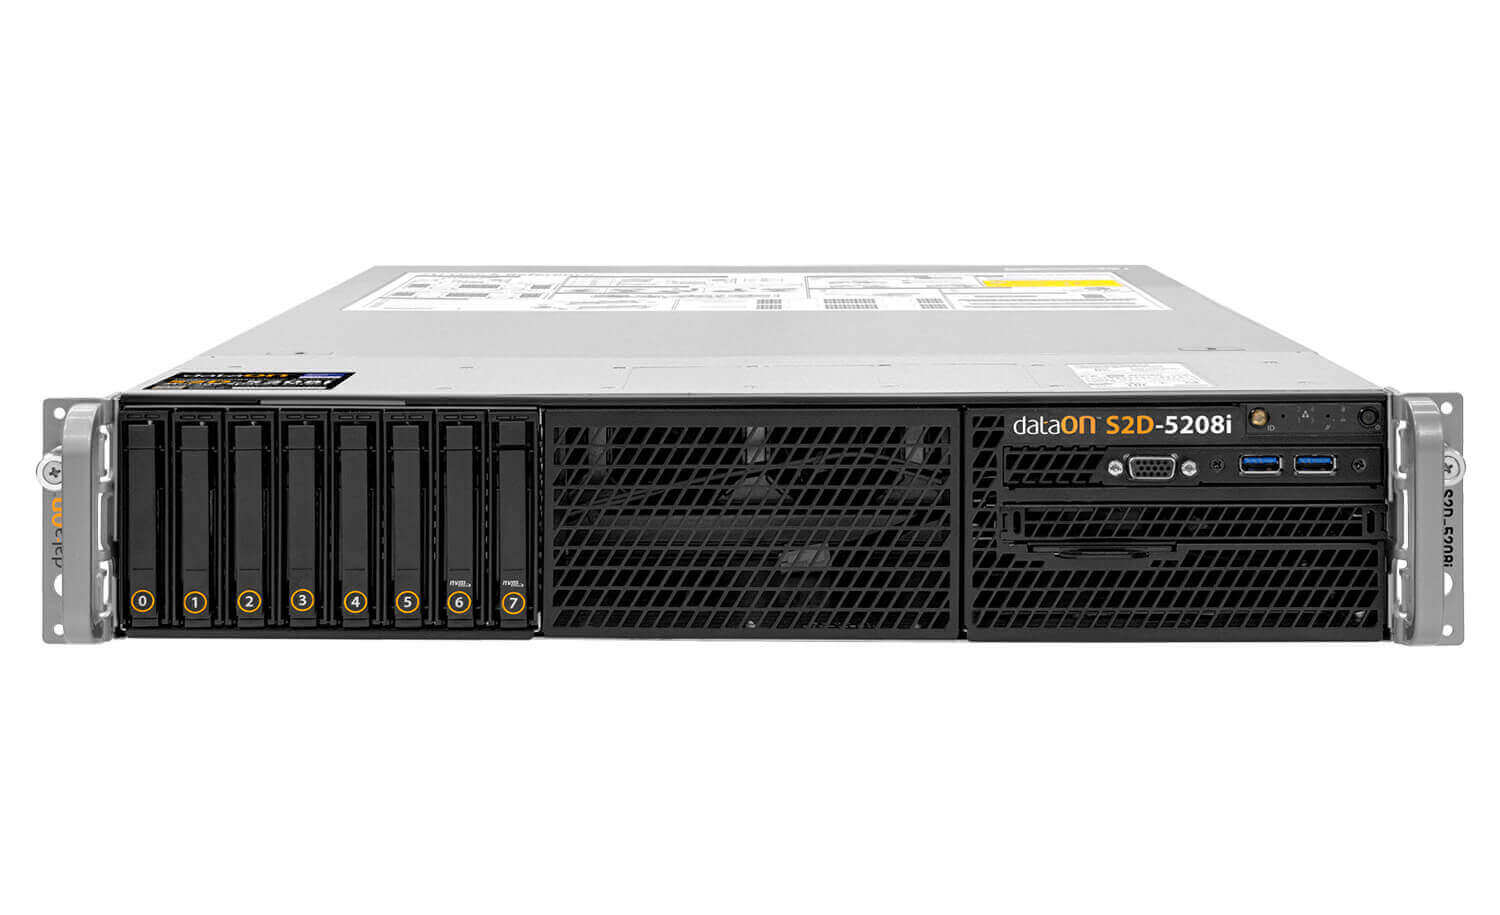 allsystems-producten-hyperconverged-systems-DataON_S2D-5208i_Front_View